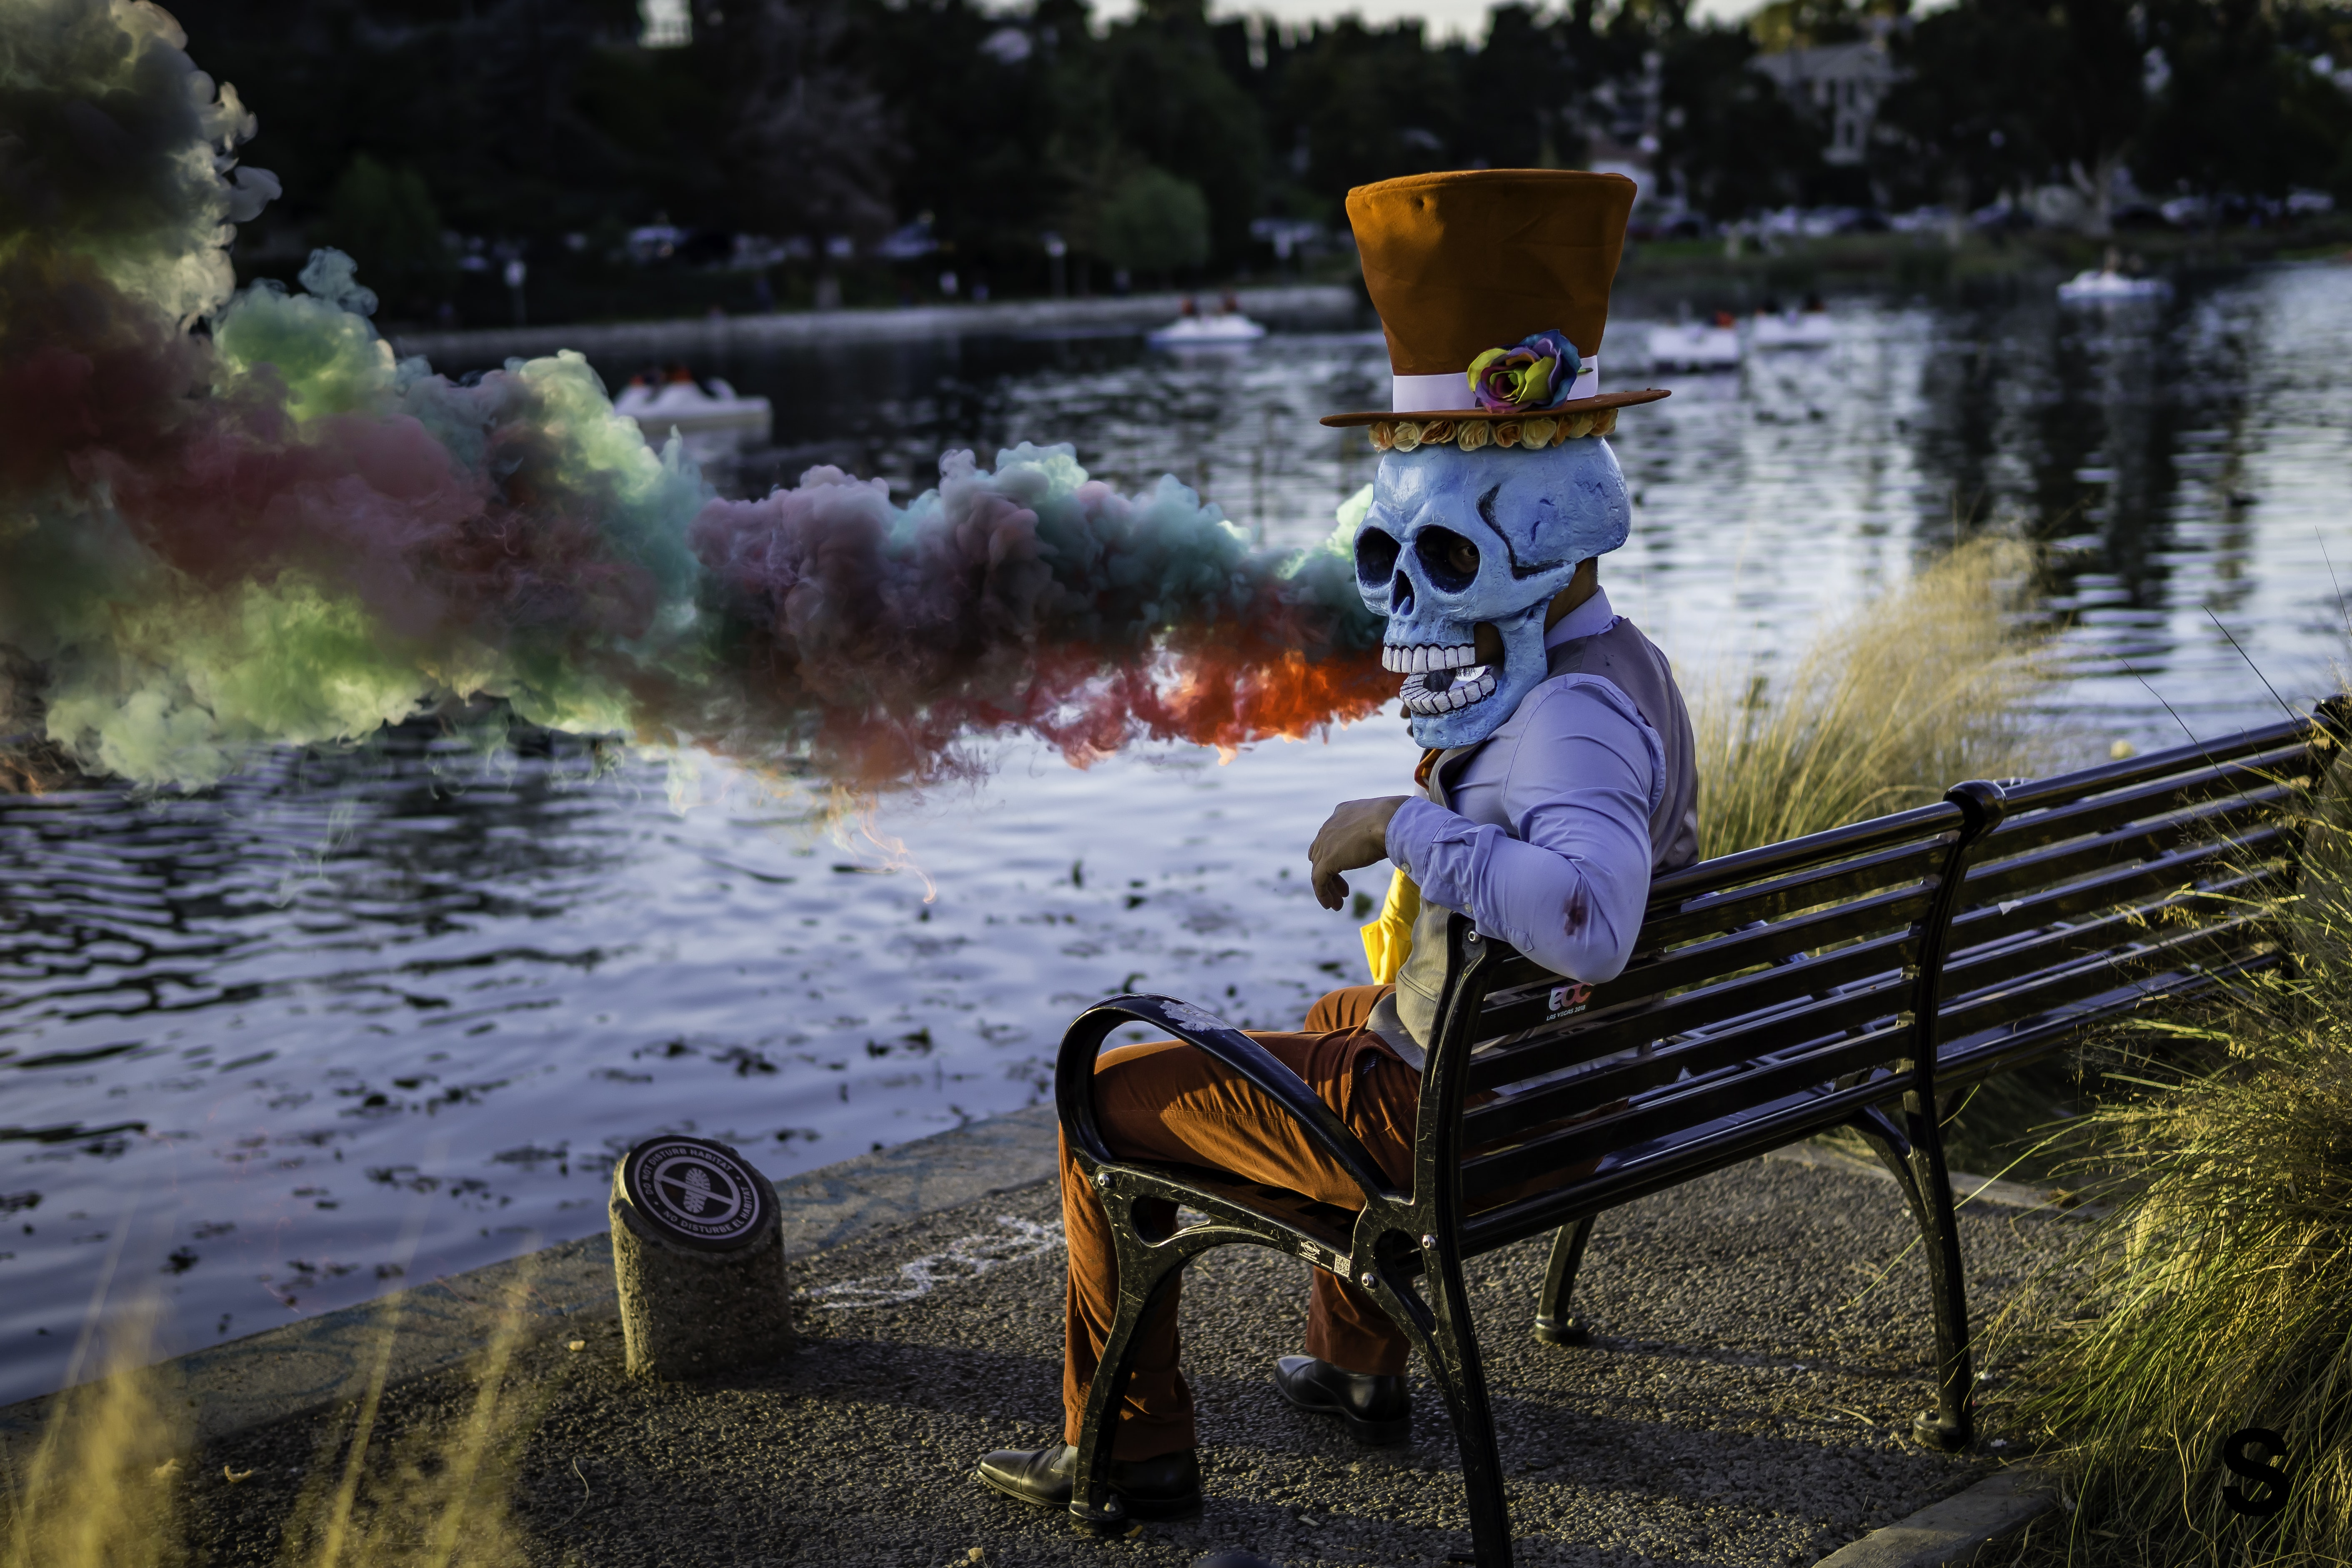 person wearing skull mask costume sitting on bench